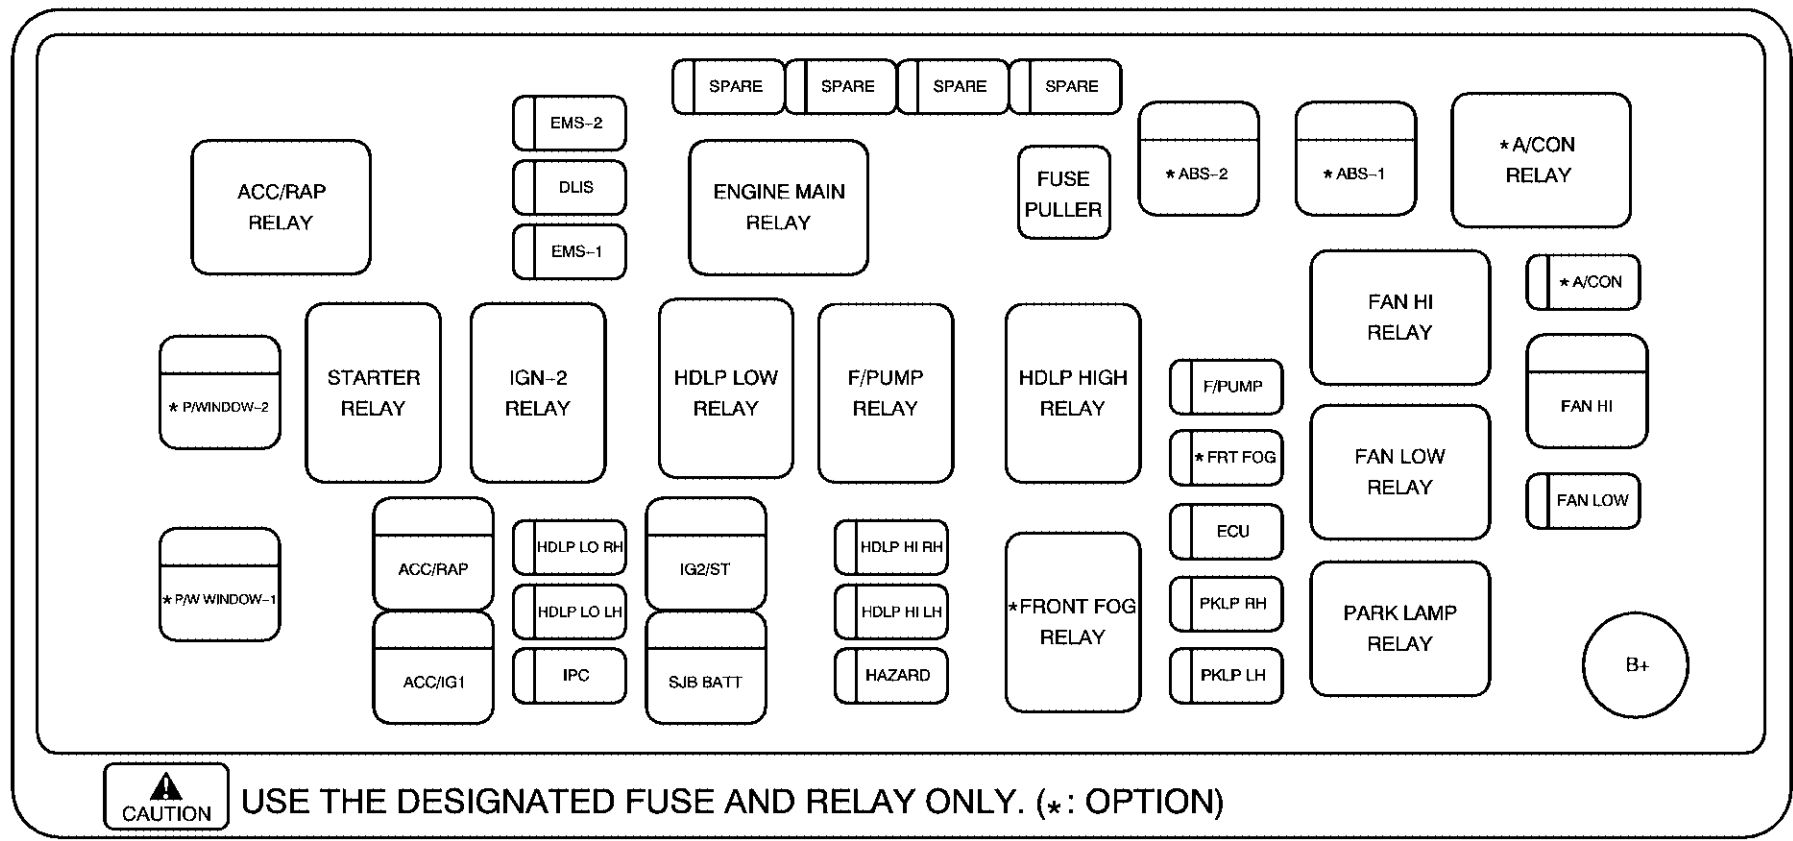 06 chevy aveo fuse box wiring diagram library 2006 commander fuse diagram 2006 colorado fuse diagram [ 1793 x 841 Pixel ]